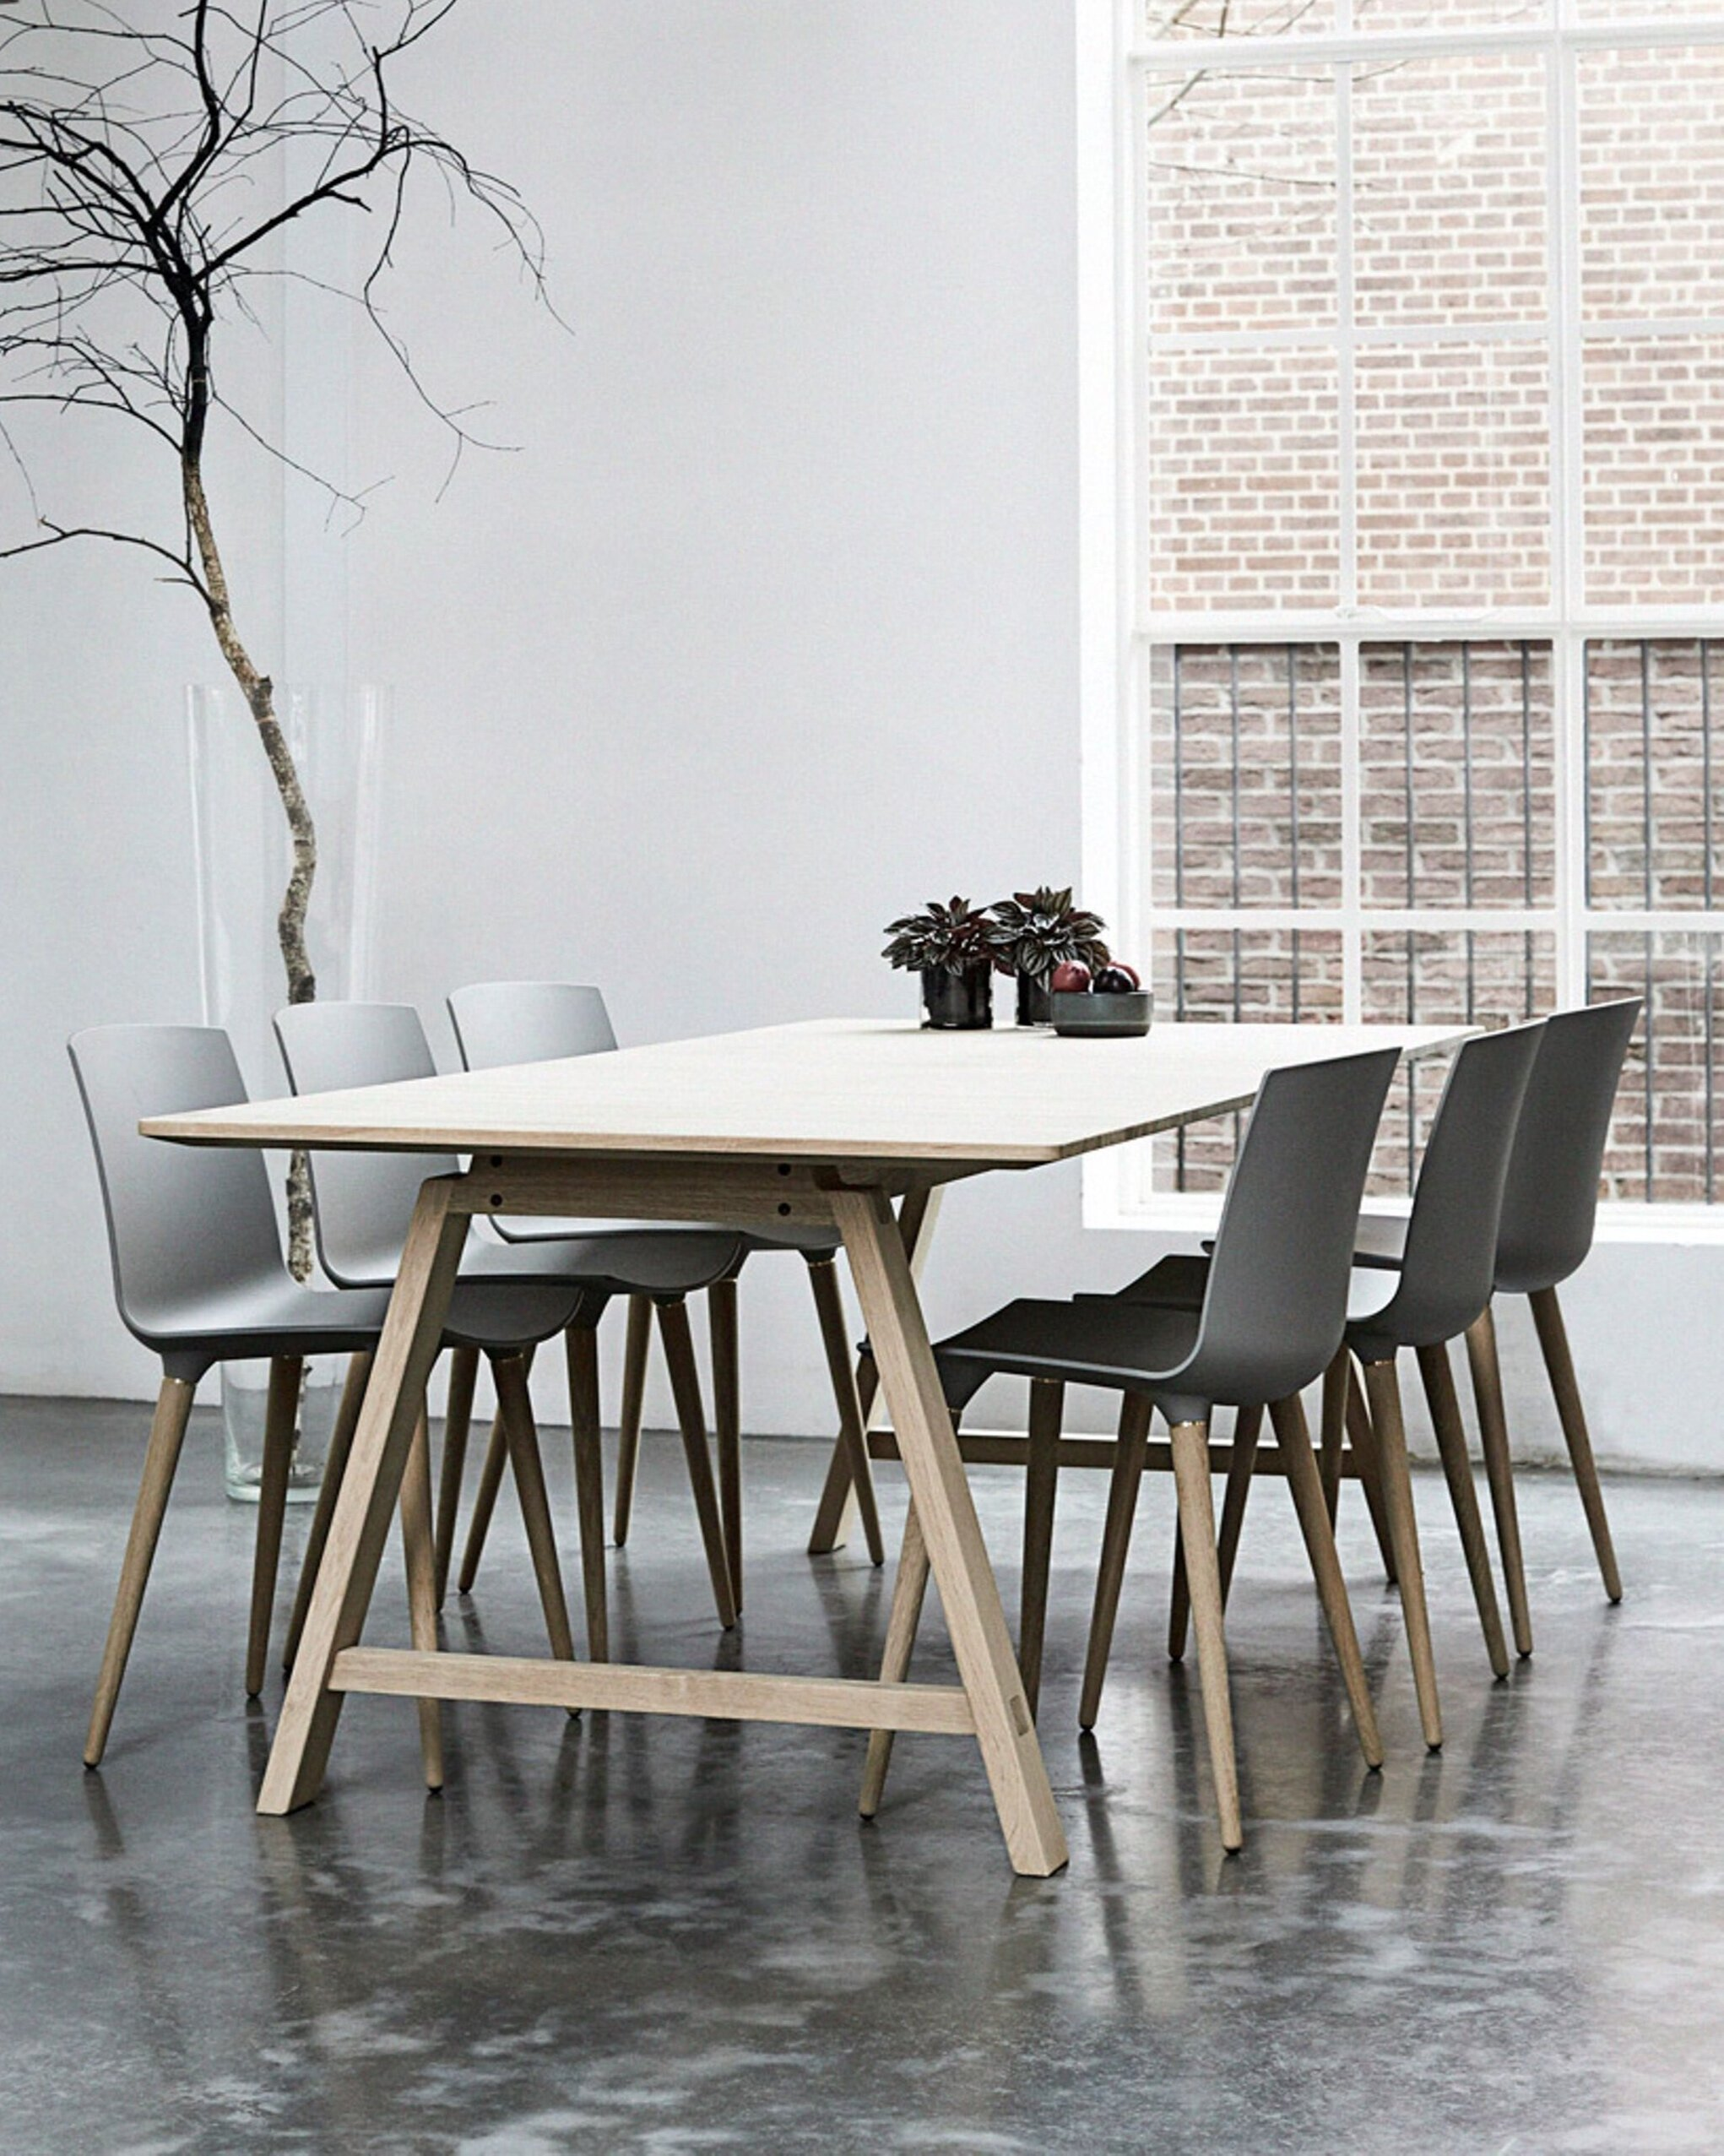 T1 - Andersen Furniture